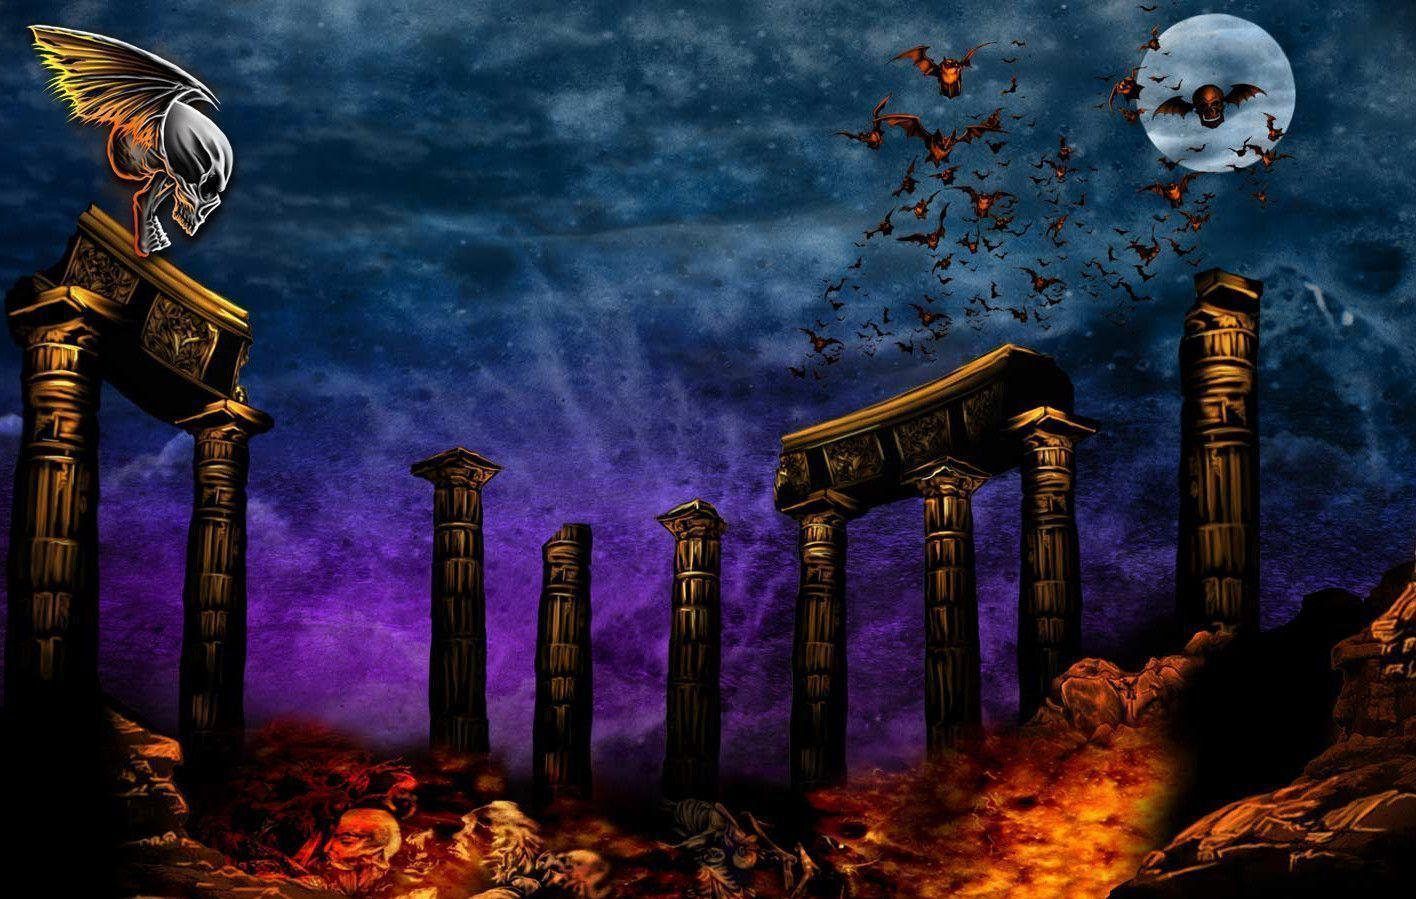 A7X Backgrounds 1416x899